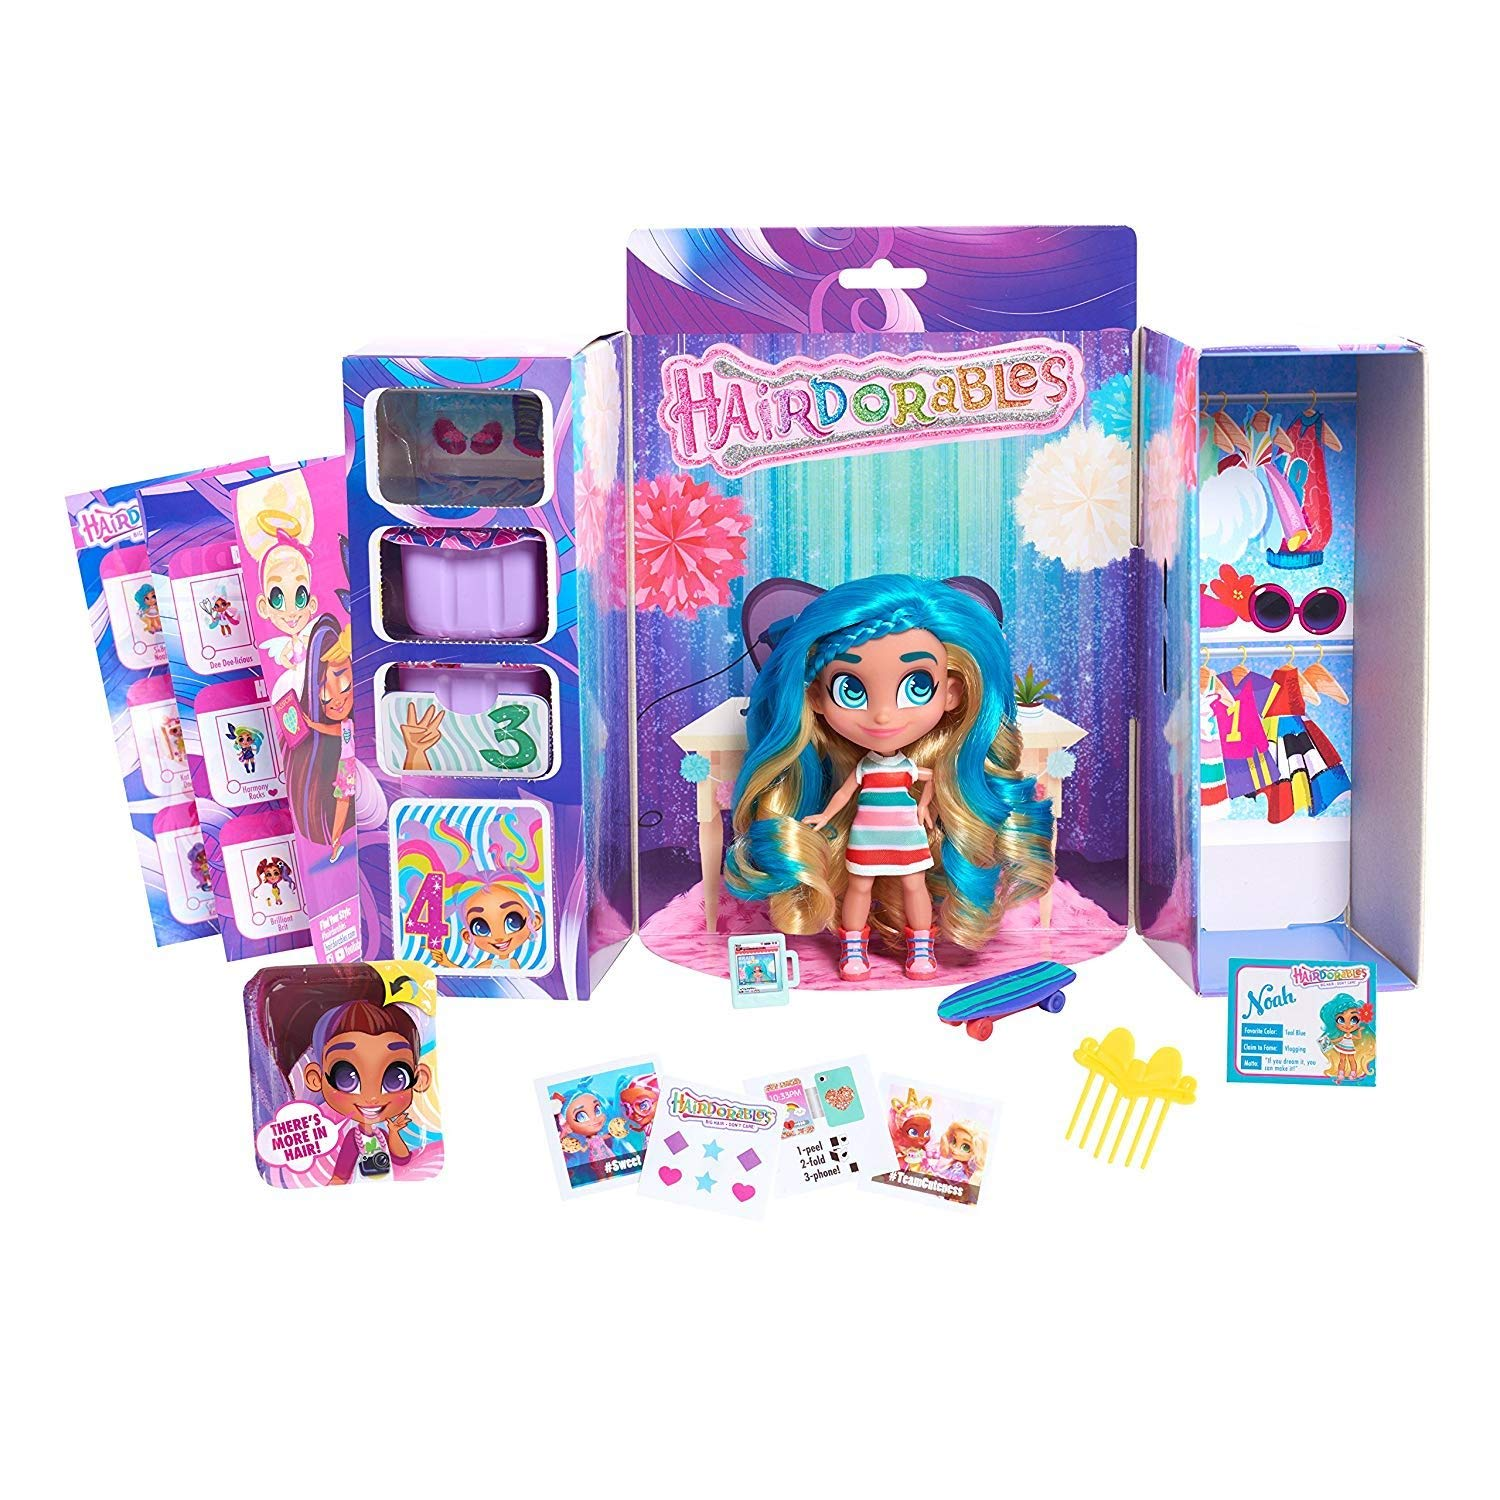 the perfect holiday toys for girls hairdorable doll with accessories